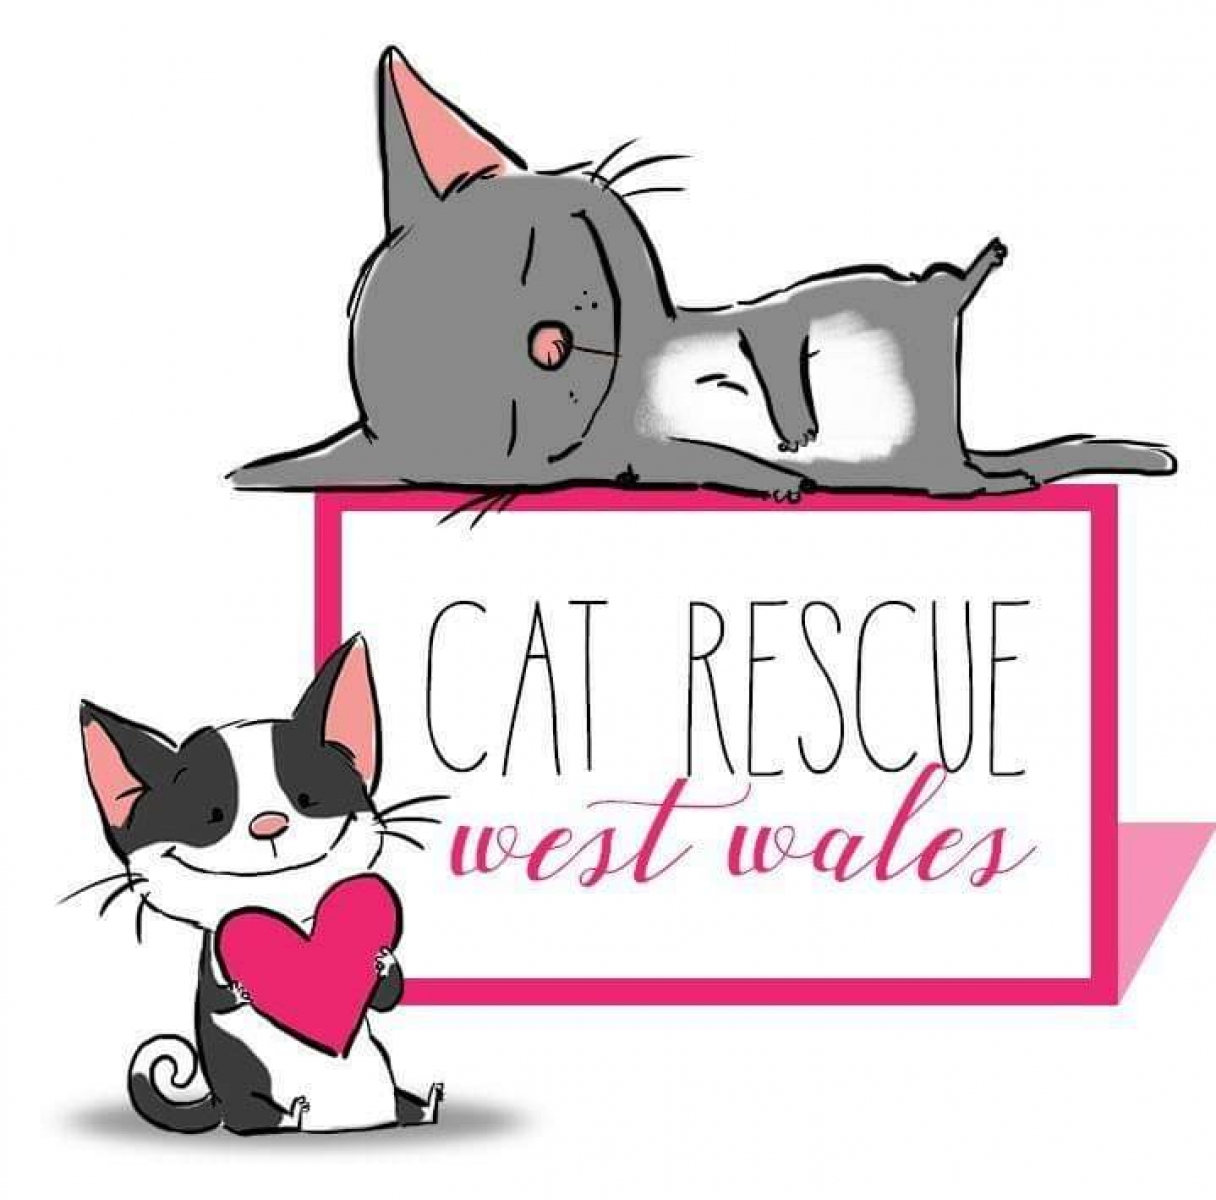 Cat Rescue West Wales eCards